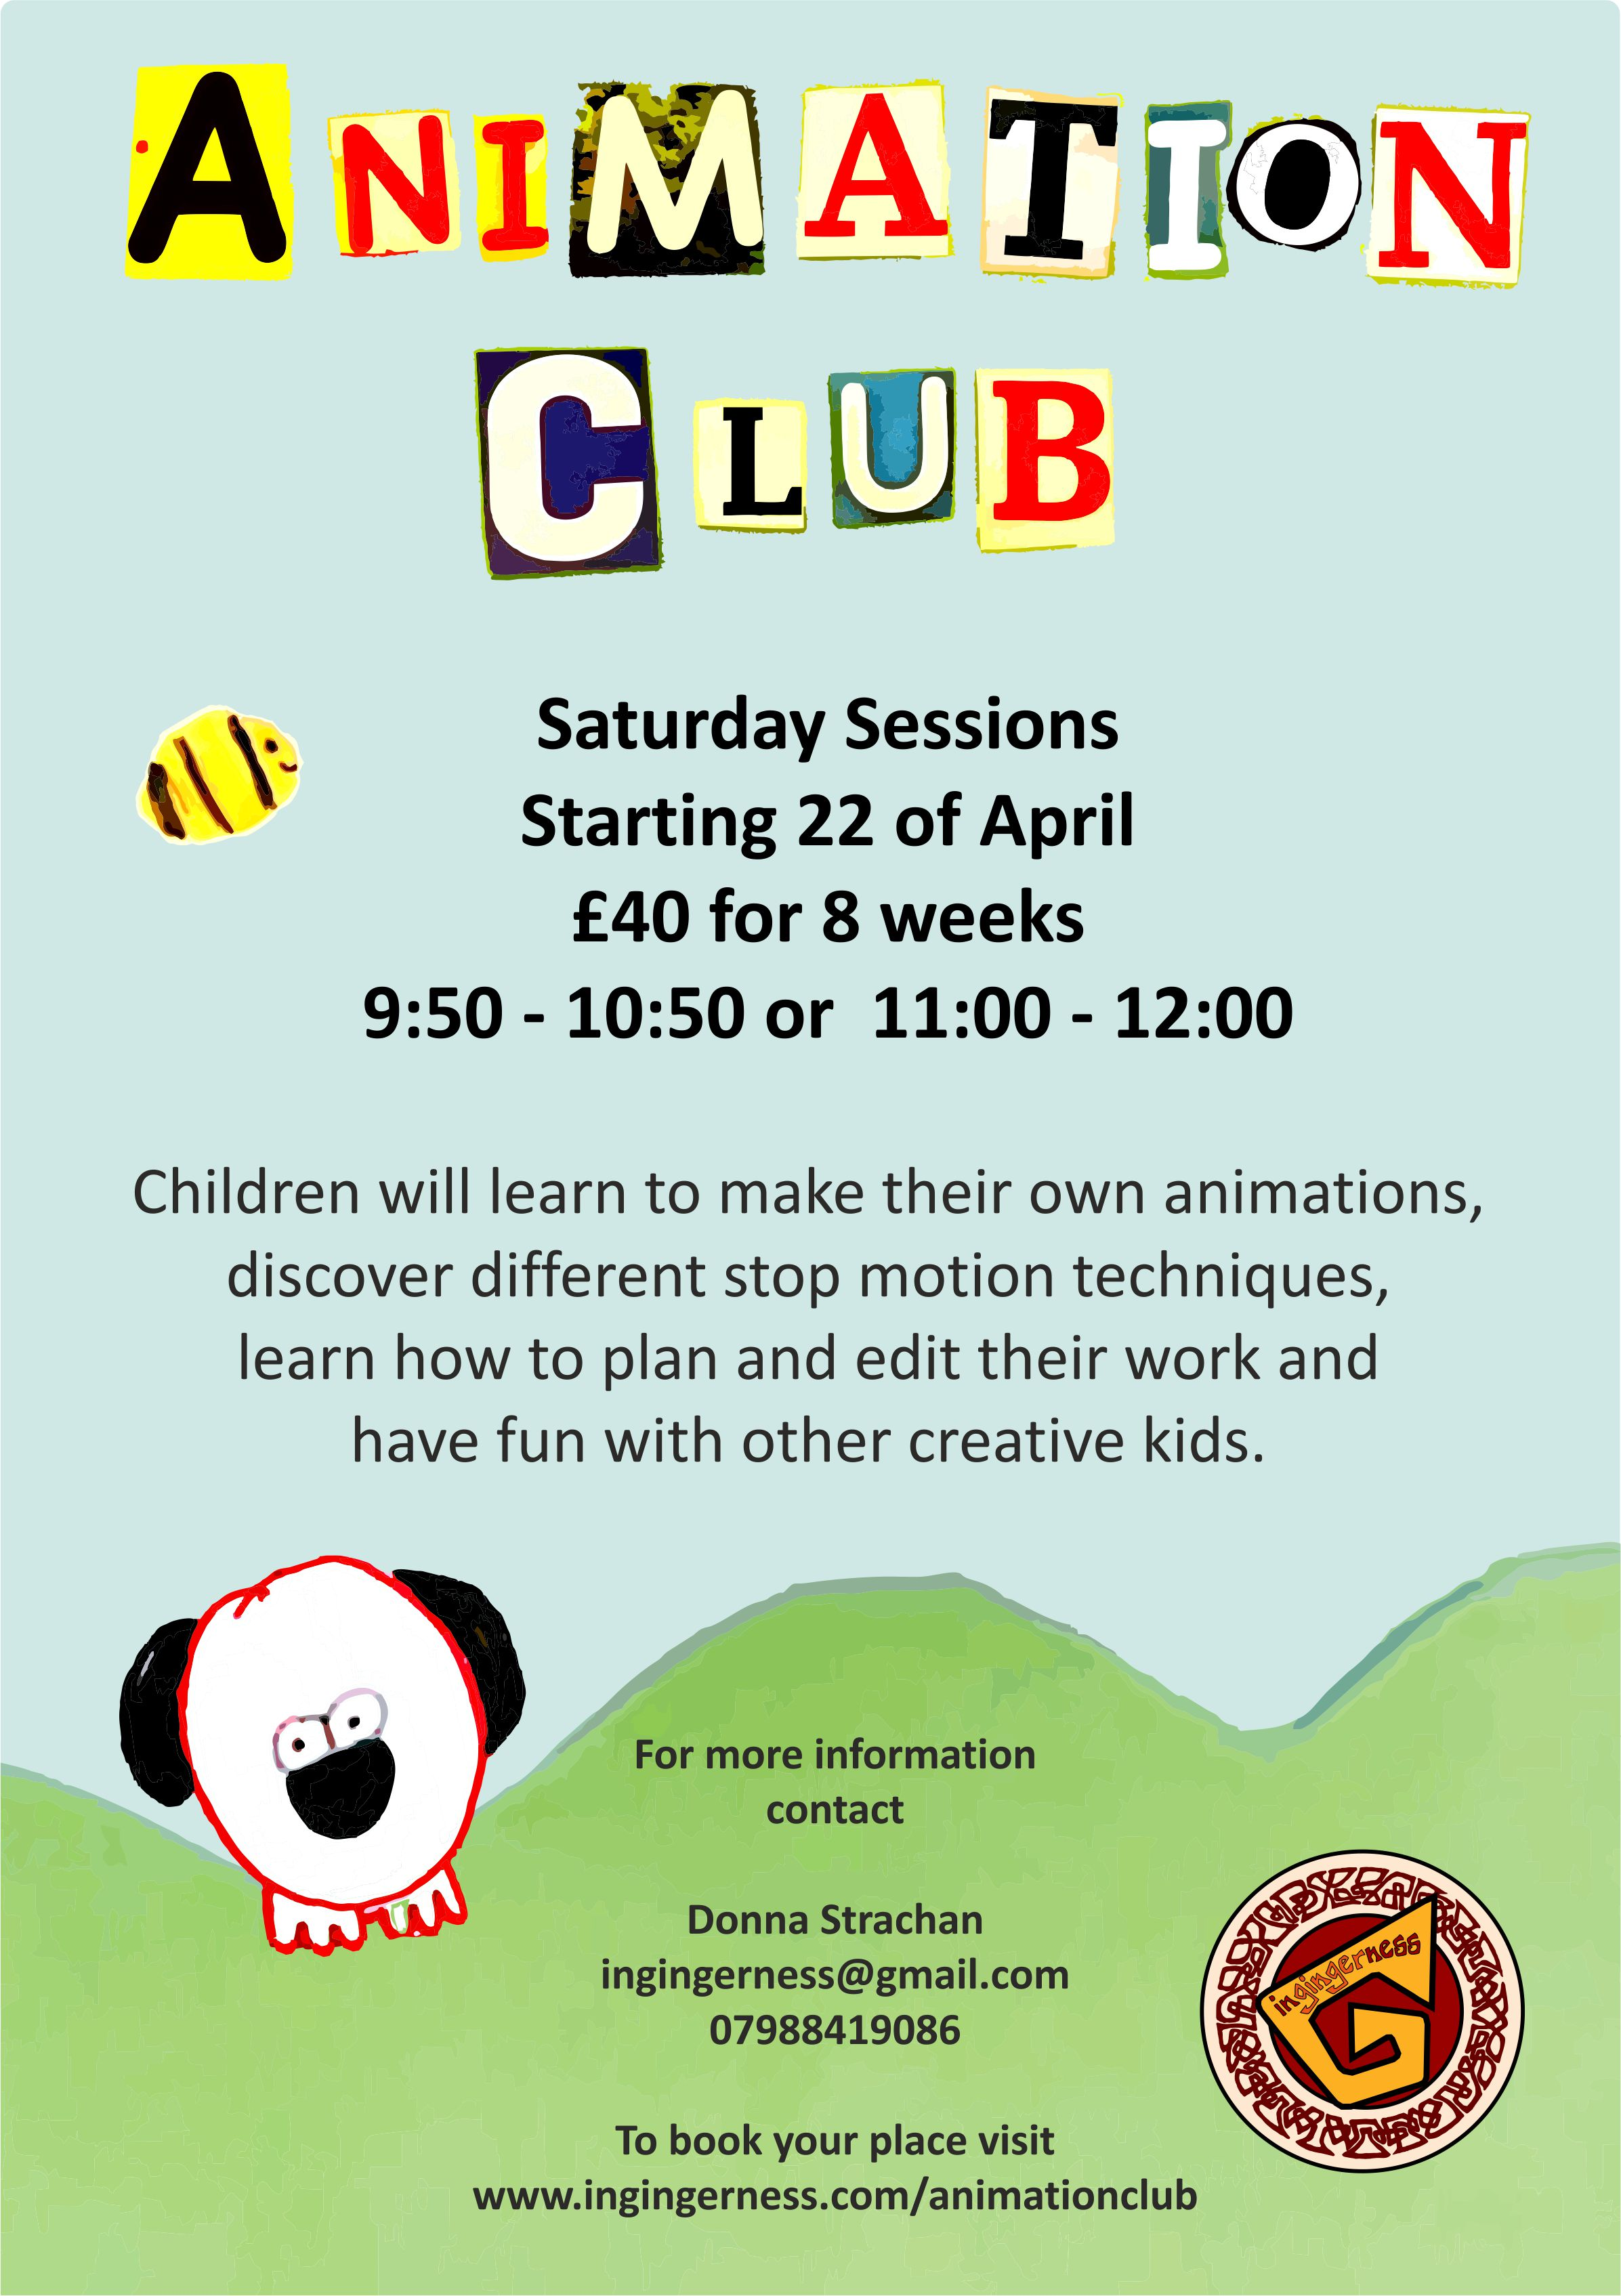 Creative clubs and activities for children in Midlothian